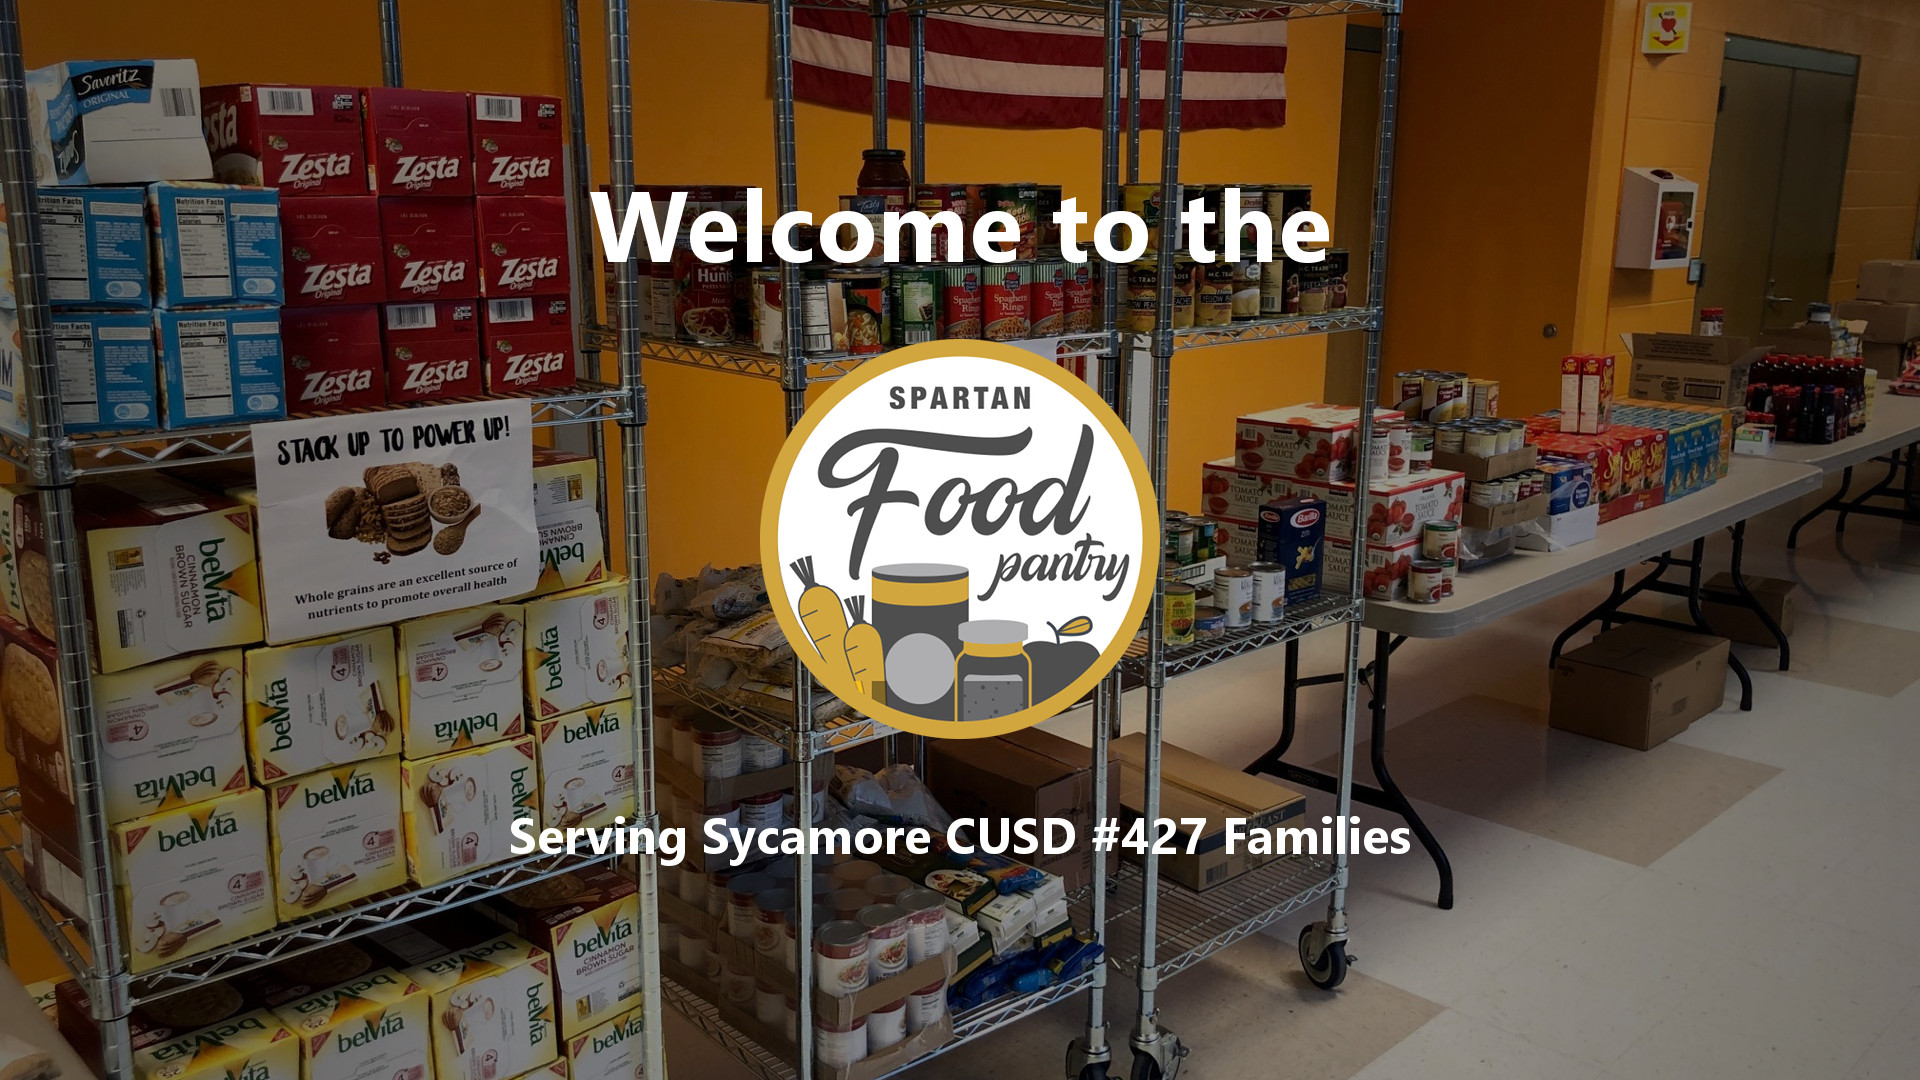 Spartan Food Pantry